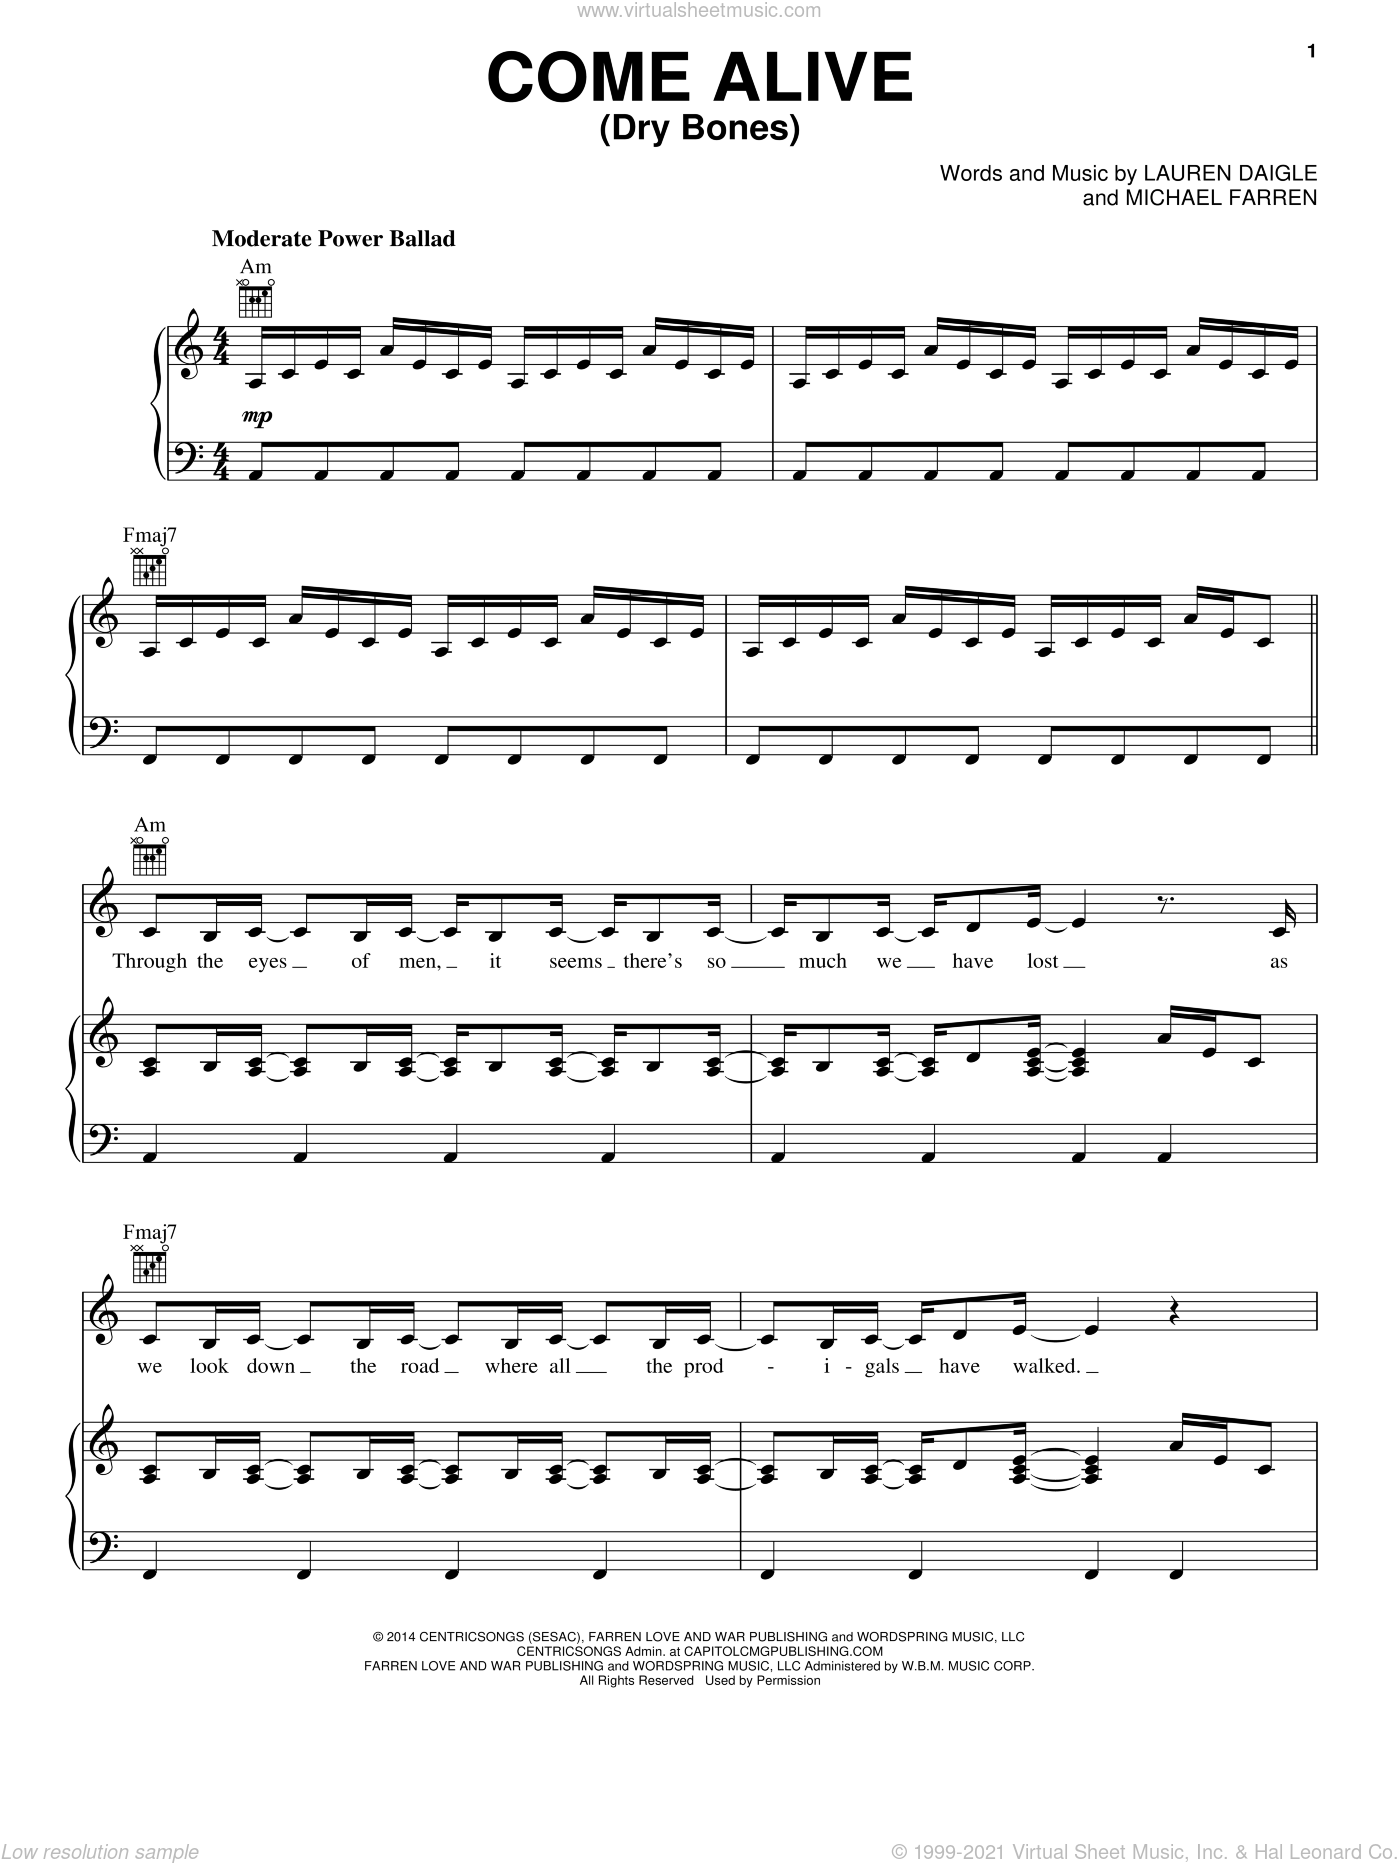 Come Alive (Dry Bones) sheet music for voice, piano or guitar by Michael Farren and Lauren Daigle, intermediate